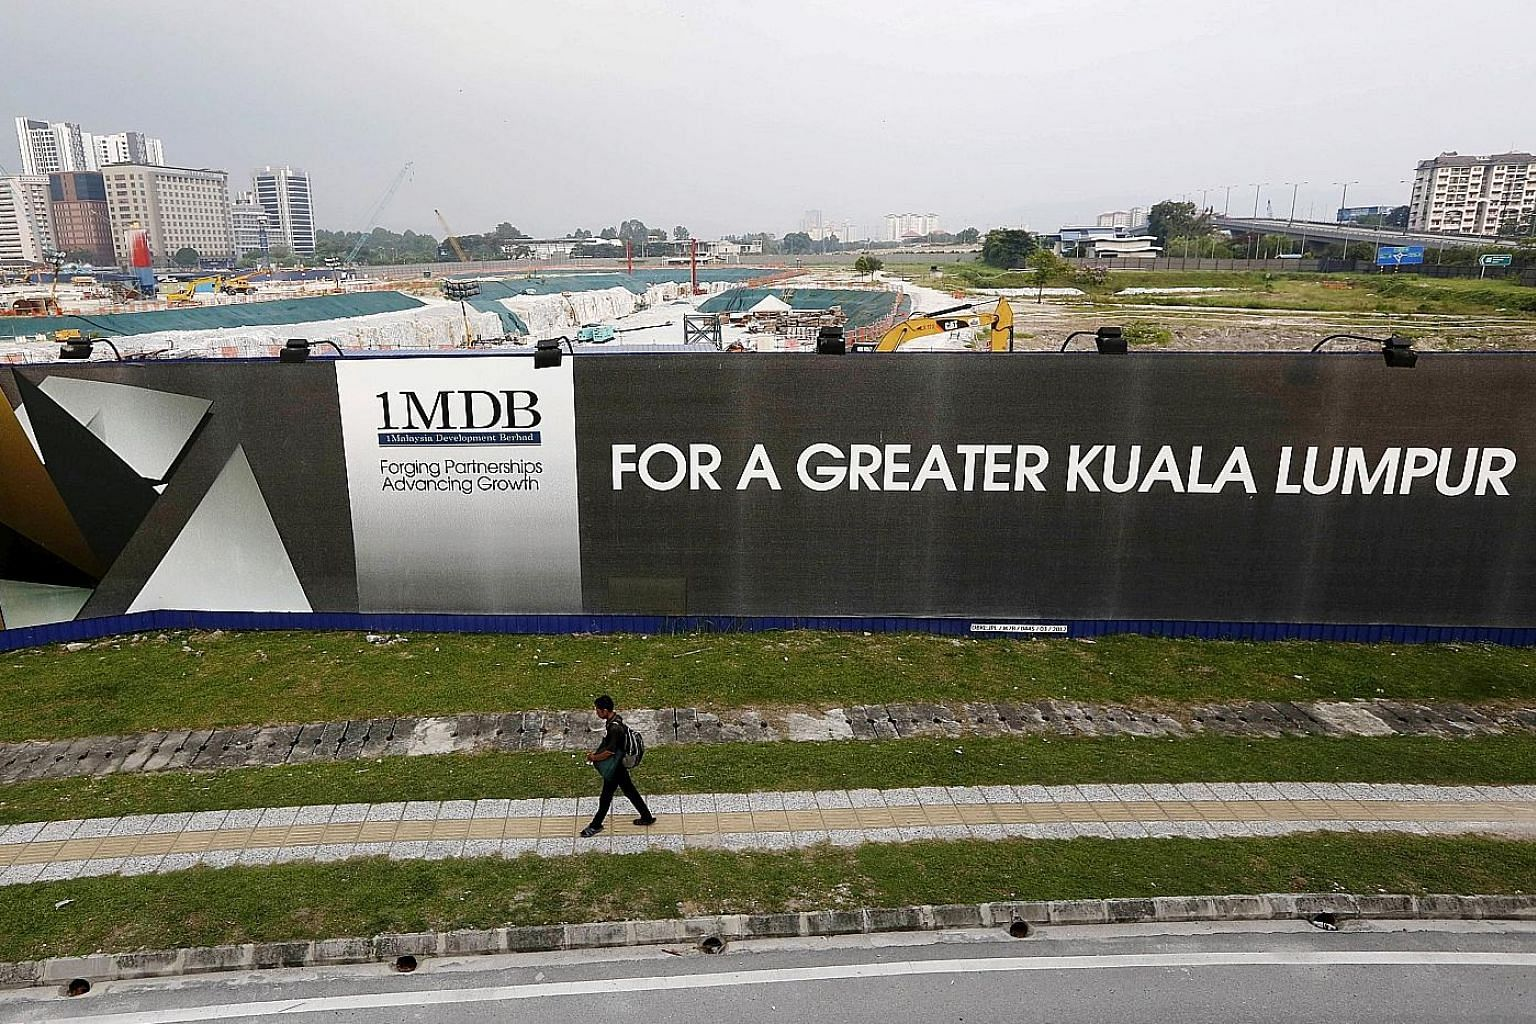 A 2015 photo showing the site for the Tun Razak Exchange, a planned financial district in Kuala Lumpur with aspirations of becoming Malaysia's Wall Street. The project was funded by 1Malaysia Development Berhad.